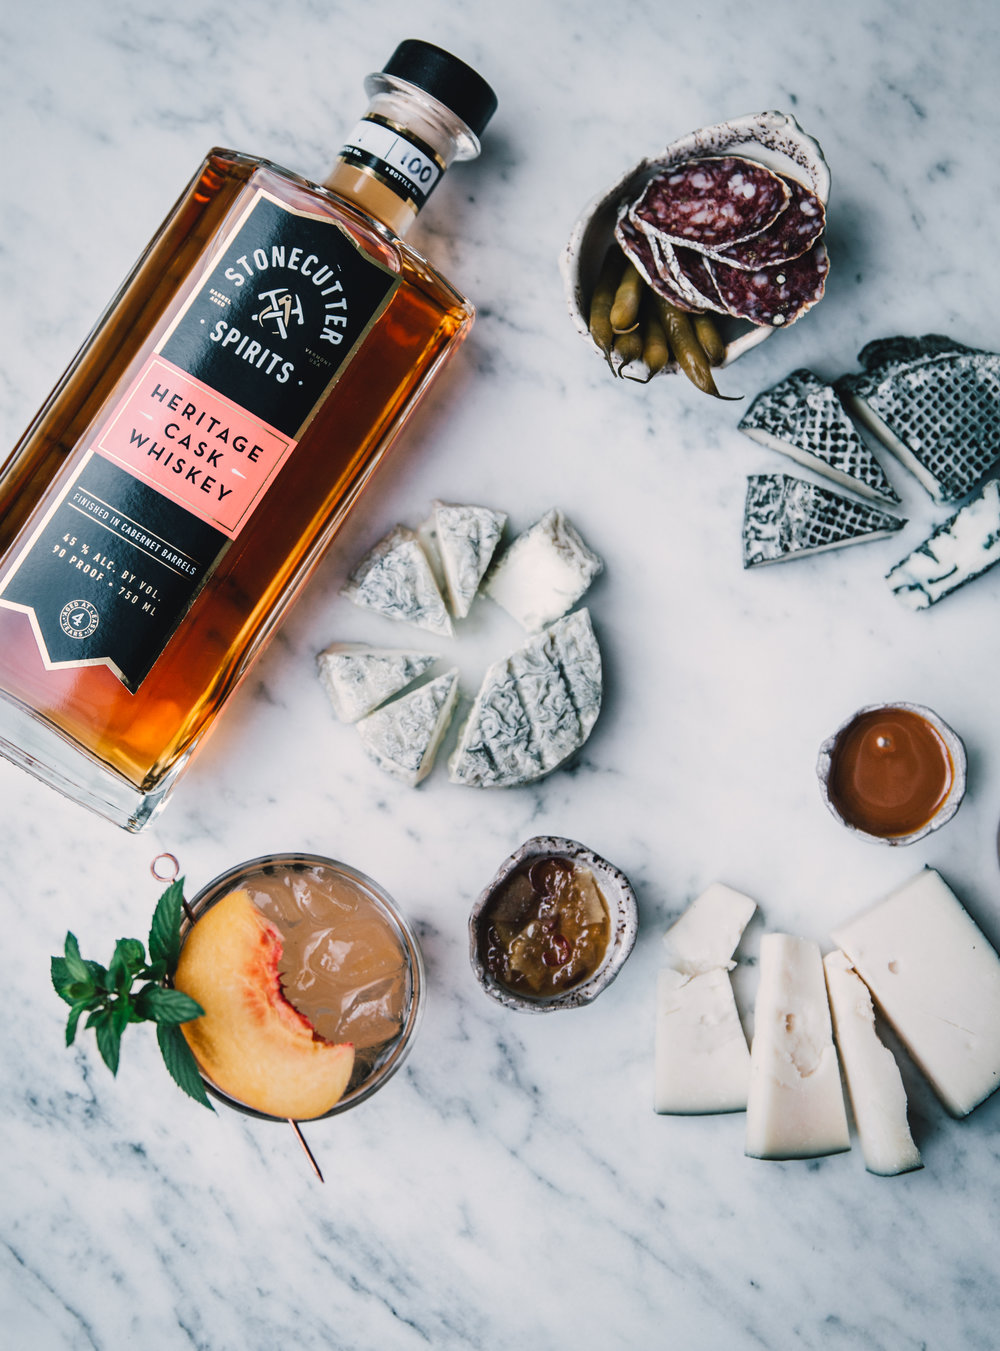 Stonecutter Spirits Vermont Distillery Heritage Cask Whiskey with Cheese